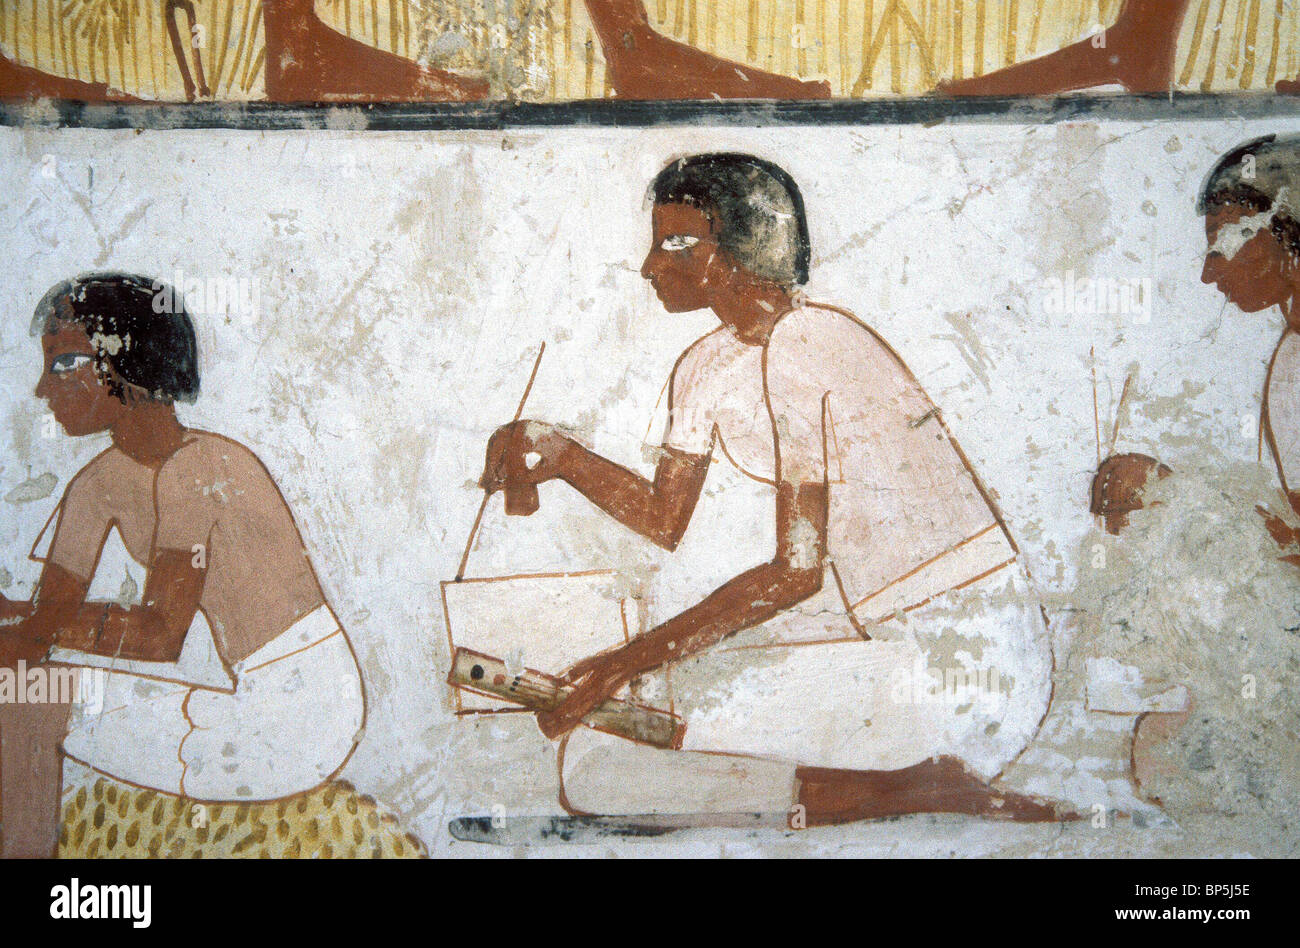 3584. A SCRIBE REGISTERING QUANTITIES OF HARVESTED WHEAT, POSSIBLY FOR TAXING PURPOSES, THEBES, TOMB OF MENNA, 1420 - Stock Image